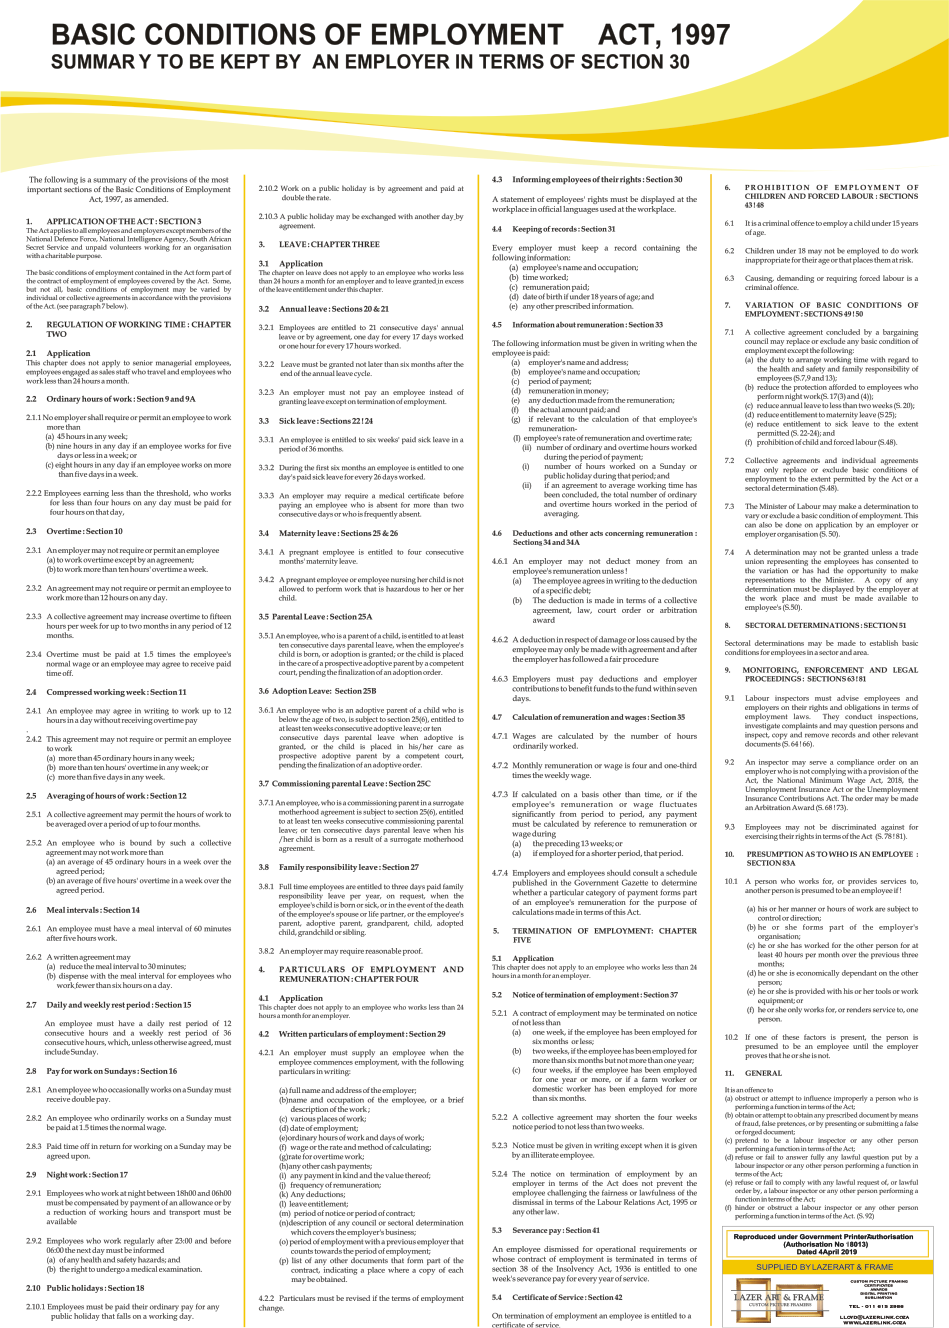 Basic Conditions of Employment Act Poster - A1 Laminated (2021) - Parental leave.